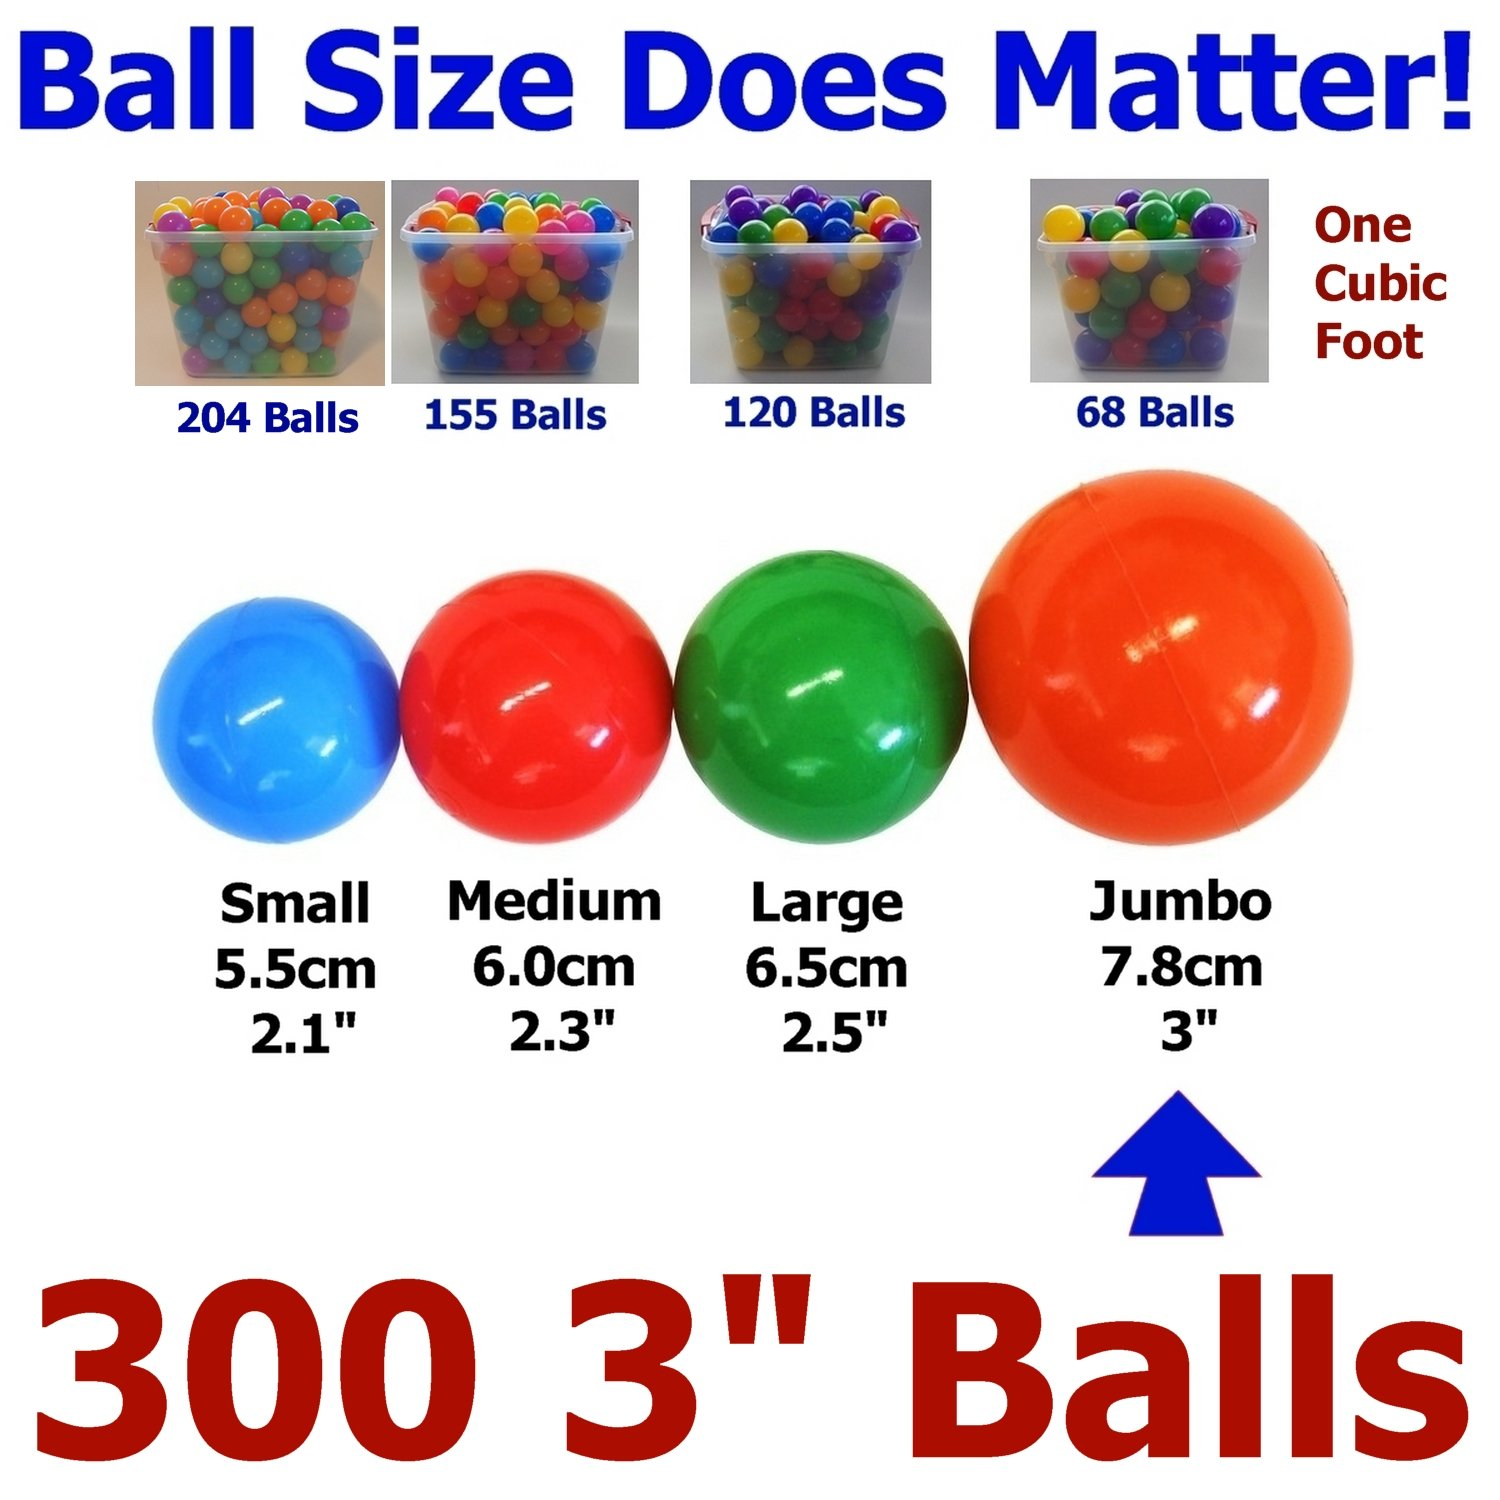 My Balls by CMS 300 pcs 3'' Jumbo Size Crush Proof Plastic Balls in Bright Colors - Phthalate Free BPA Free non-Toxic perfect amount for a Pack 'n Play Playpen HY78-300